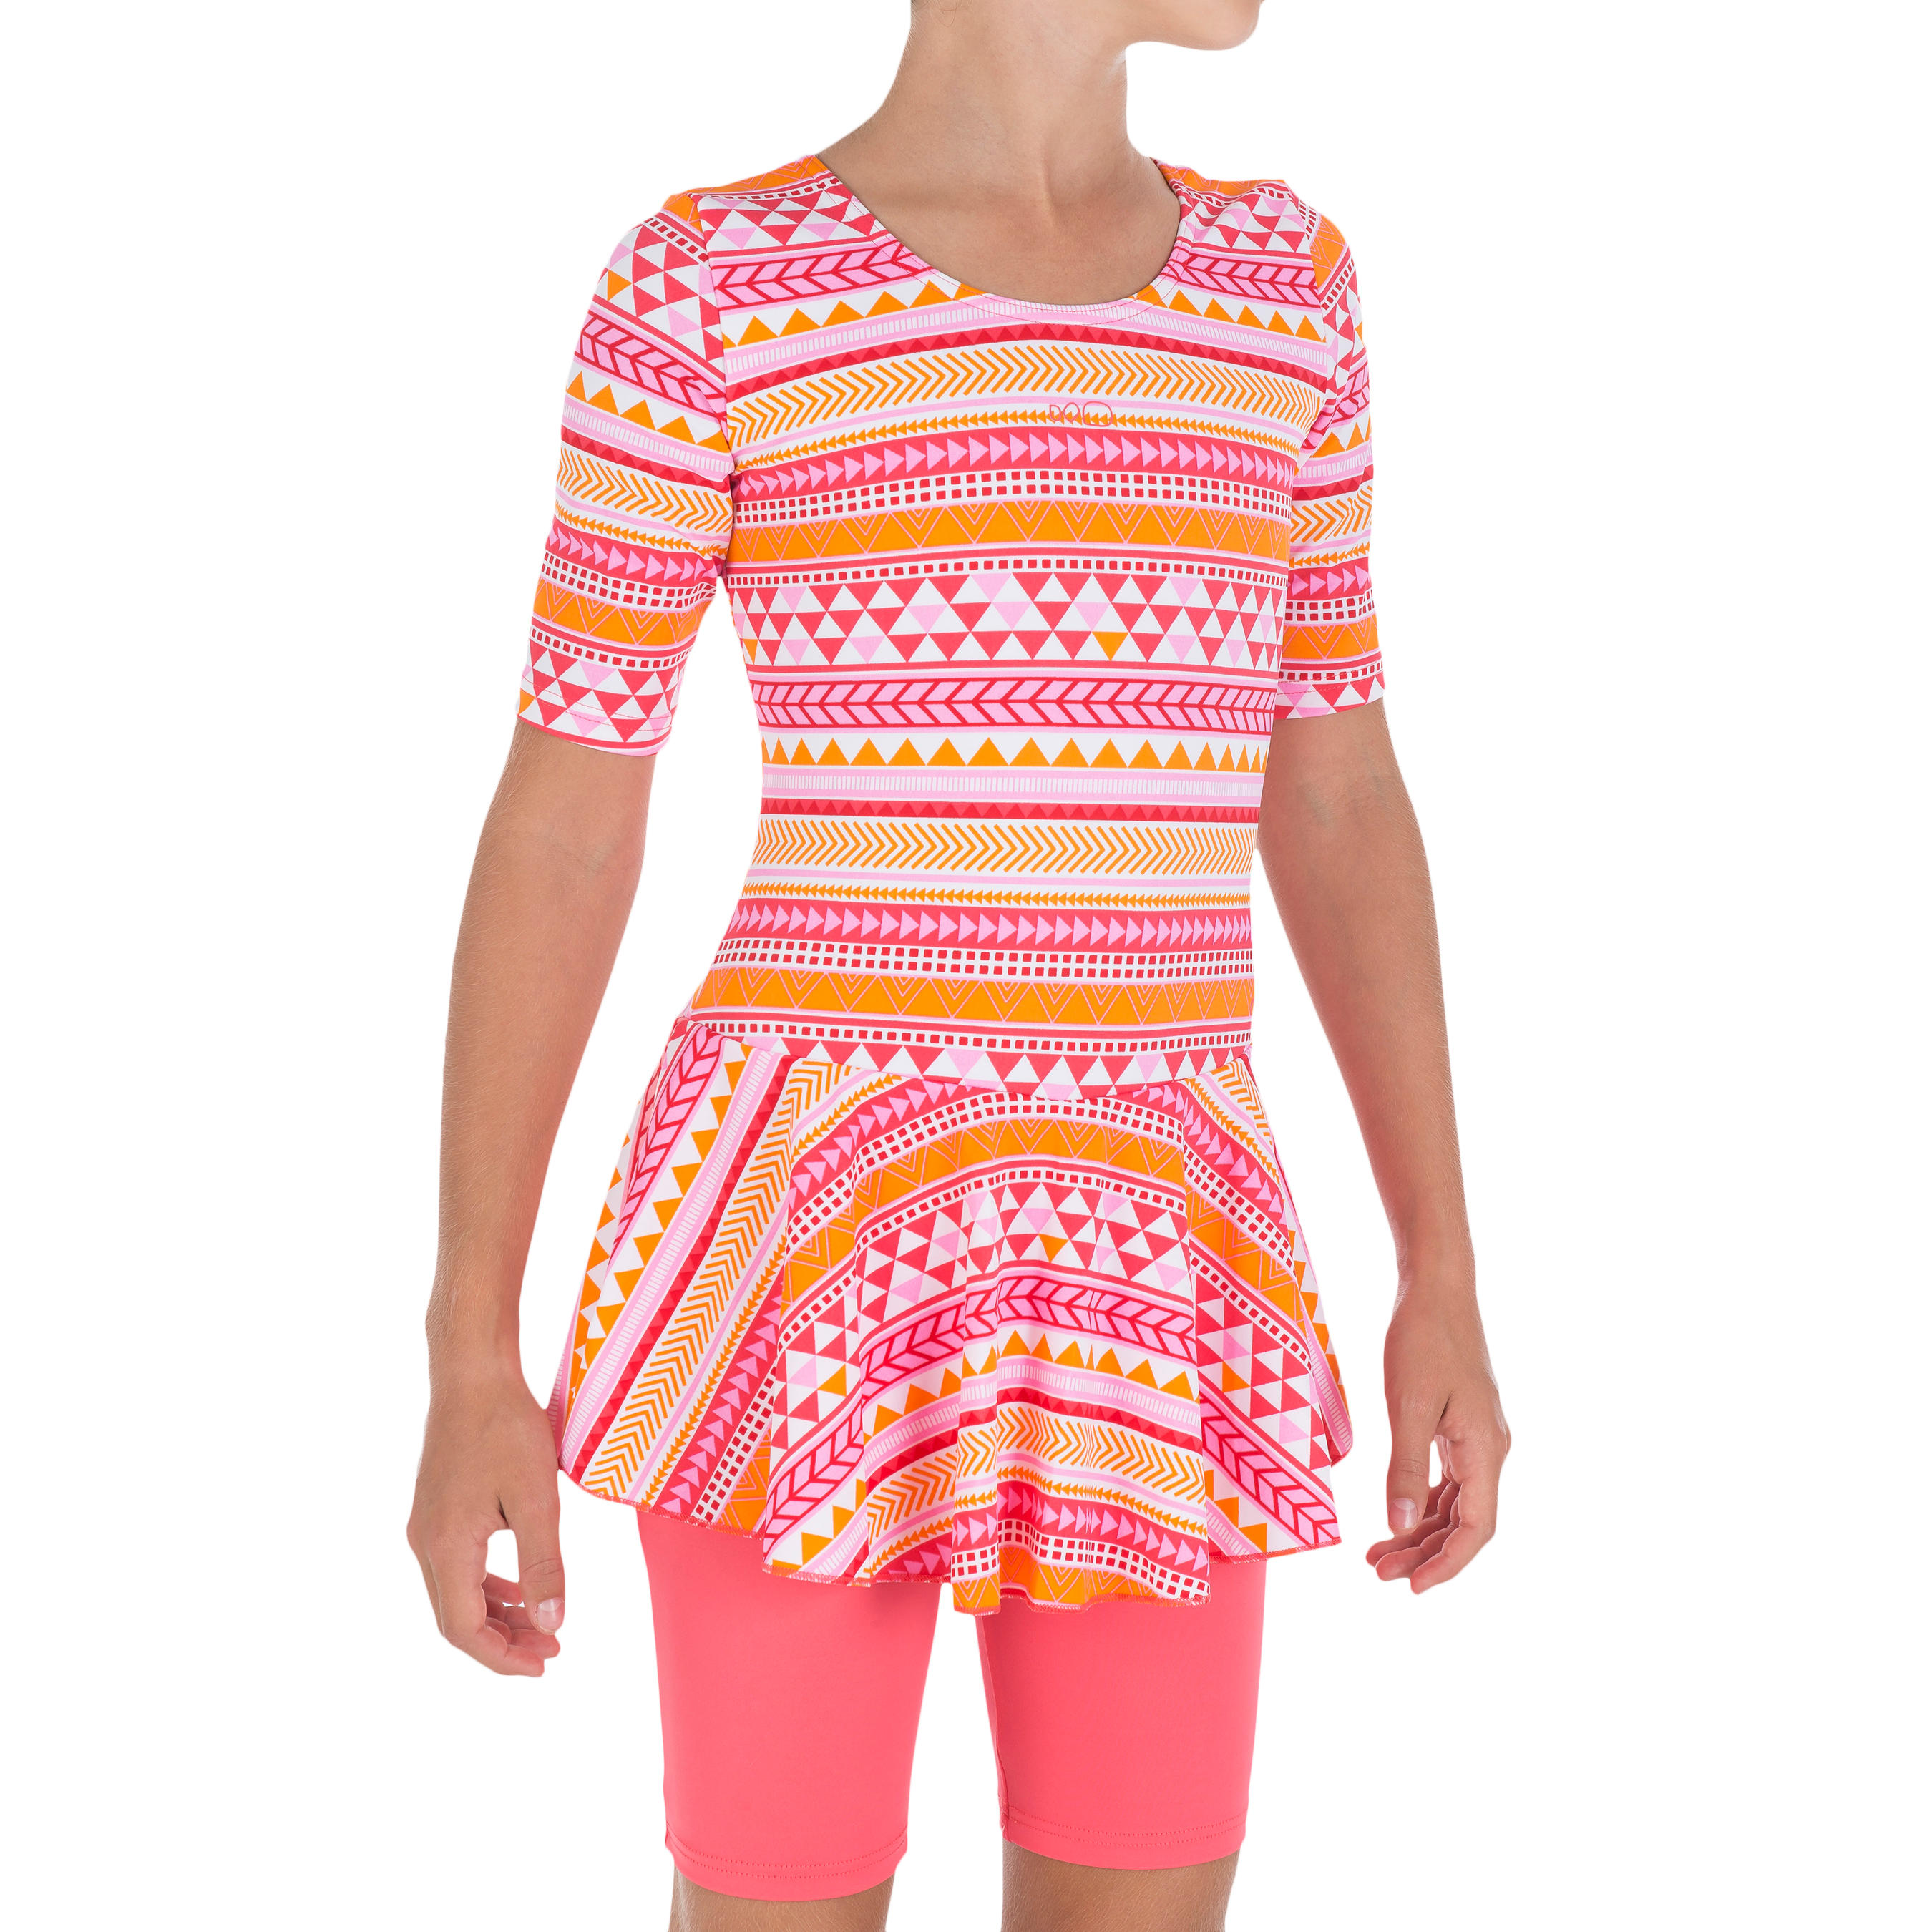 Buy Audrey Girls Jammer All Knit Swimming Costume Online In India